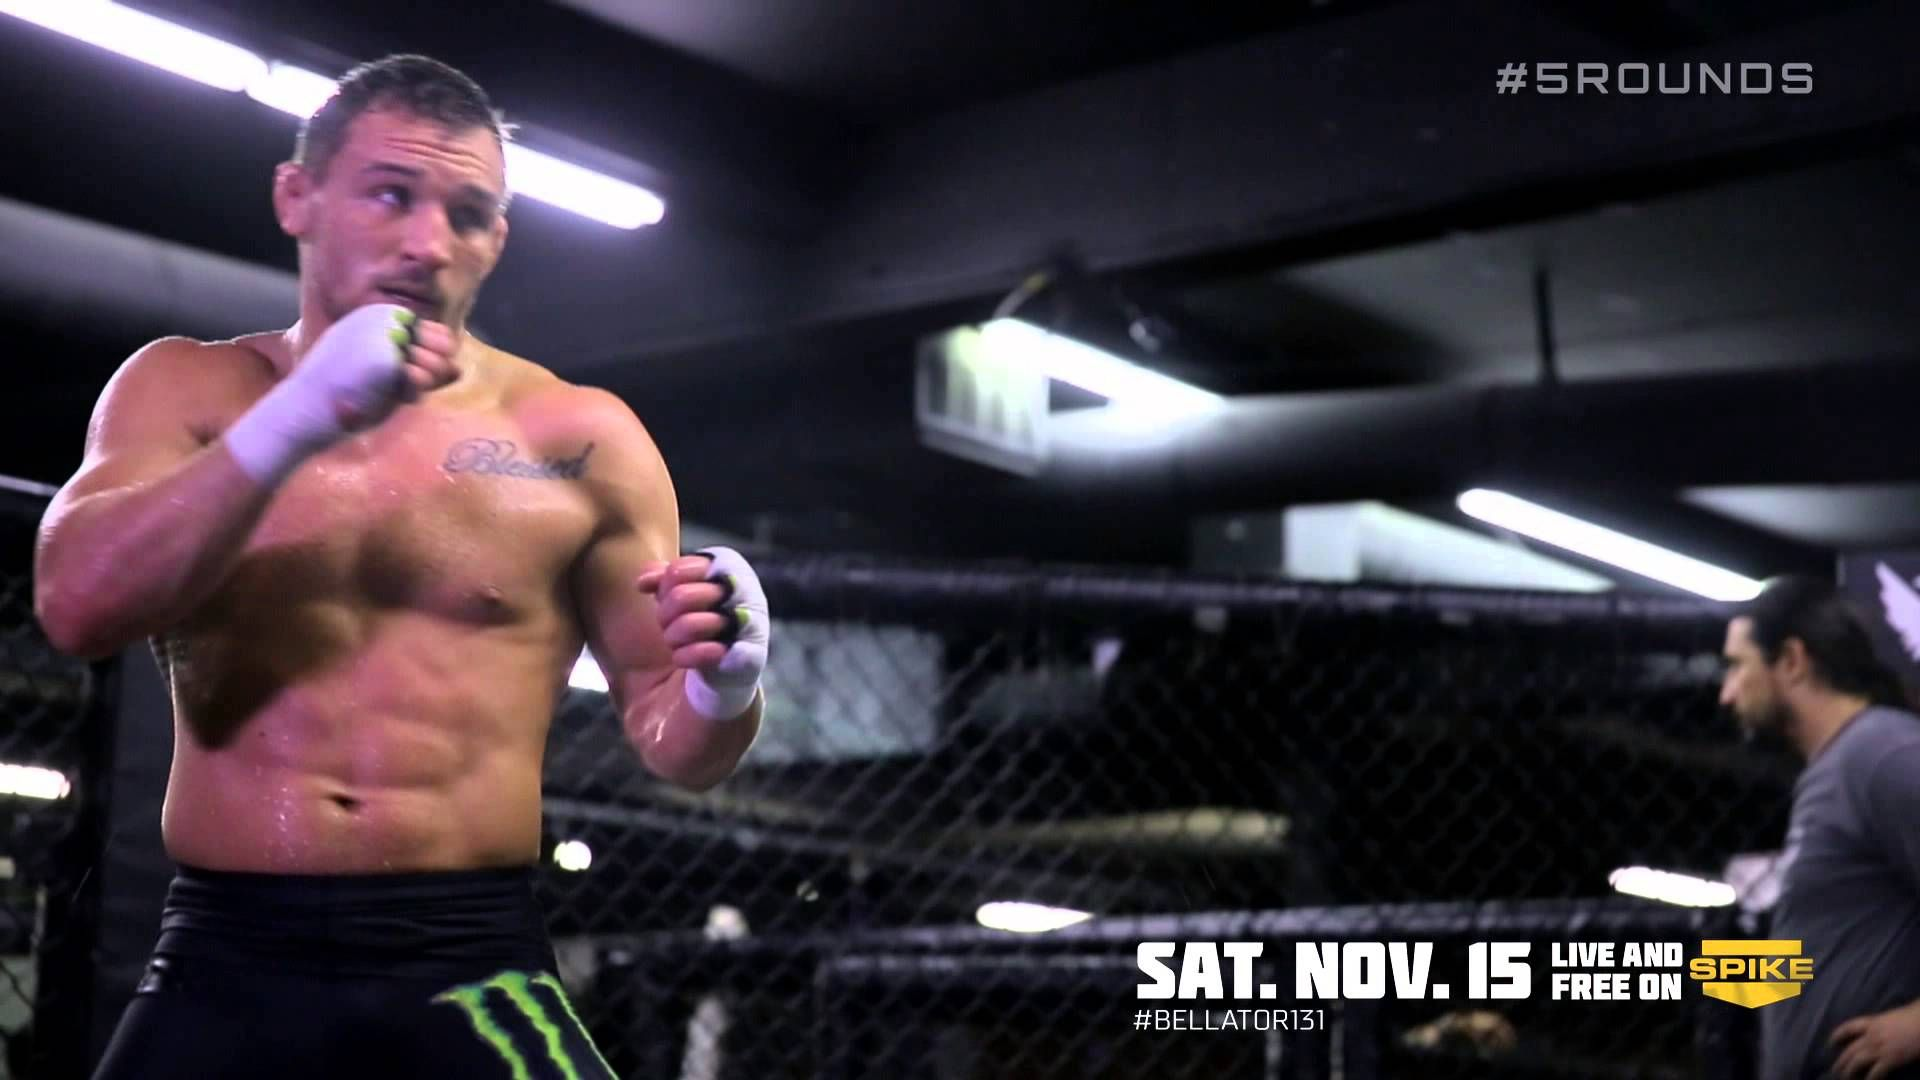 Bellator Mma 5 Rounds With Michael Chandler Bellator 131 November 15t Mma Spike Tv Fight The Good Fight